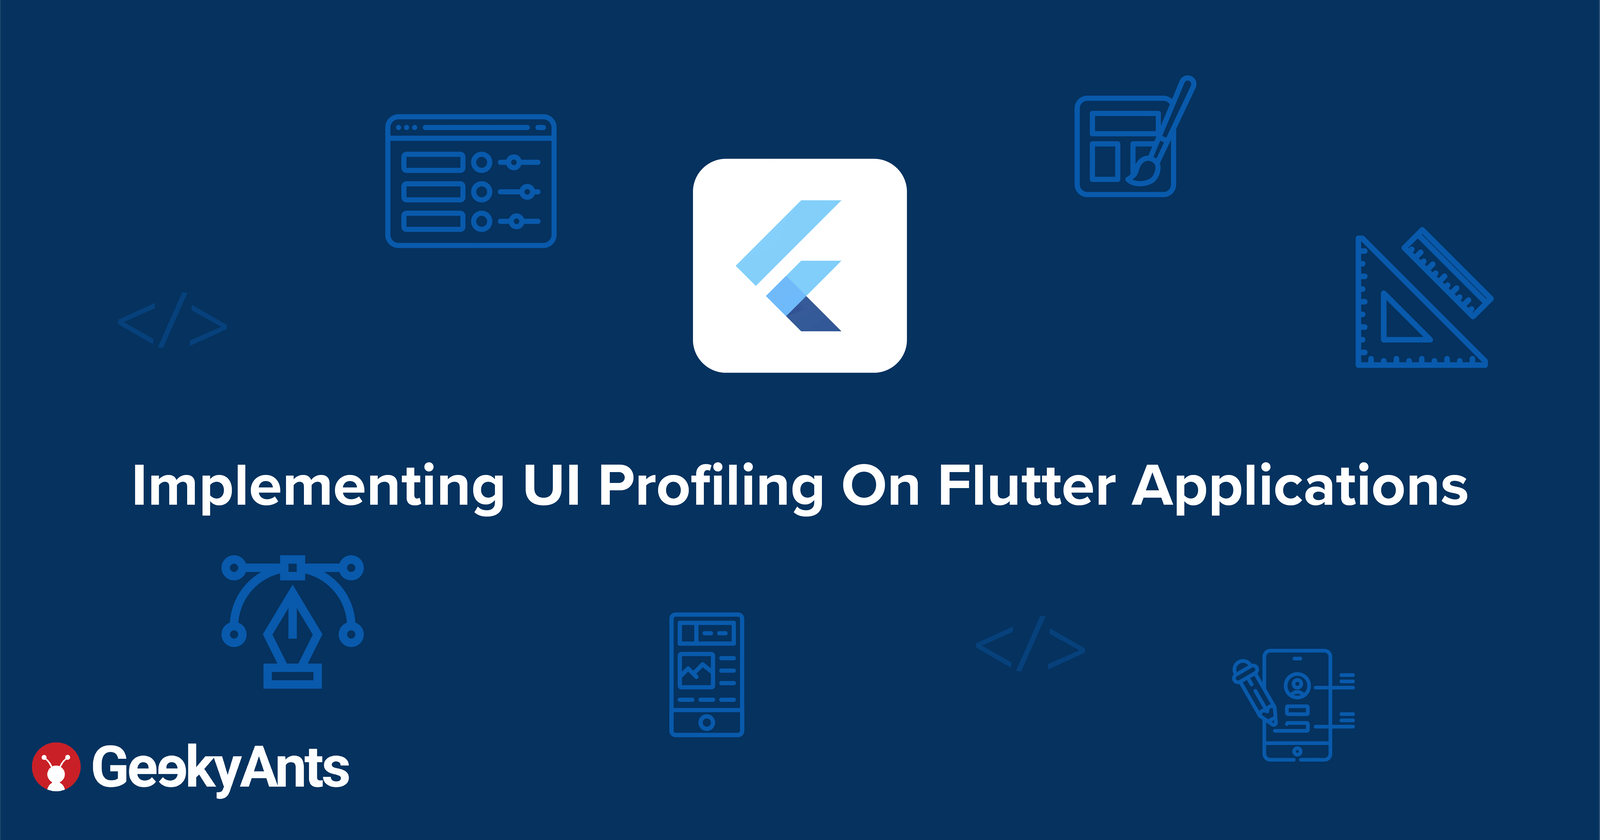 Implementing UI Profiling On Flutter Applications